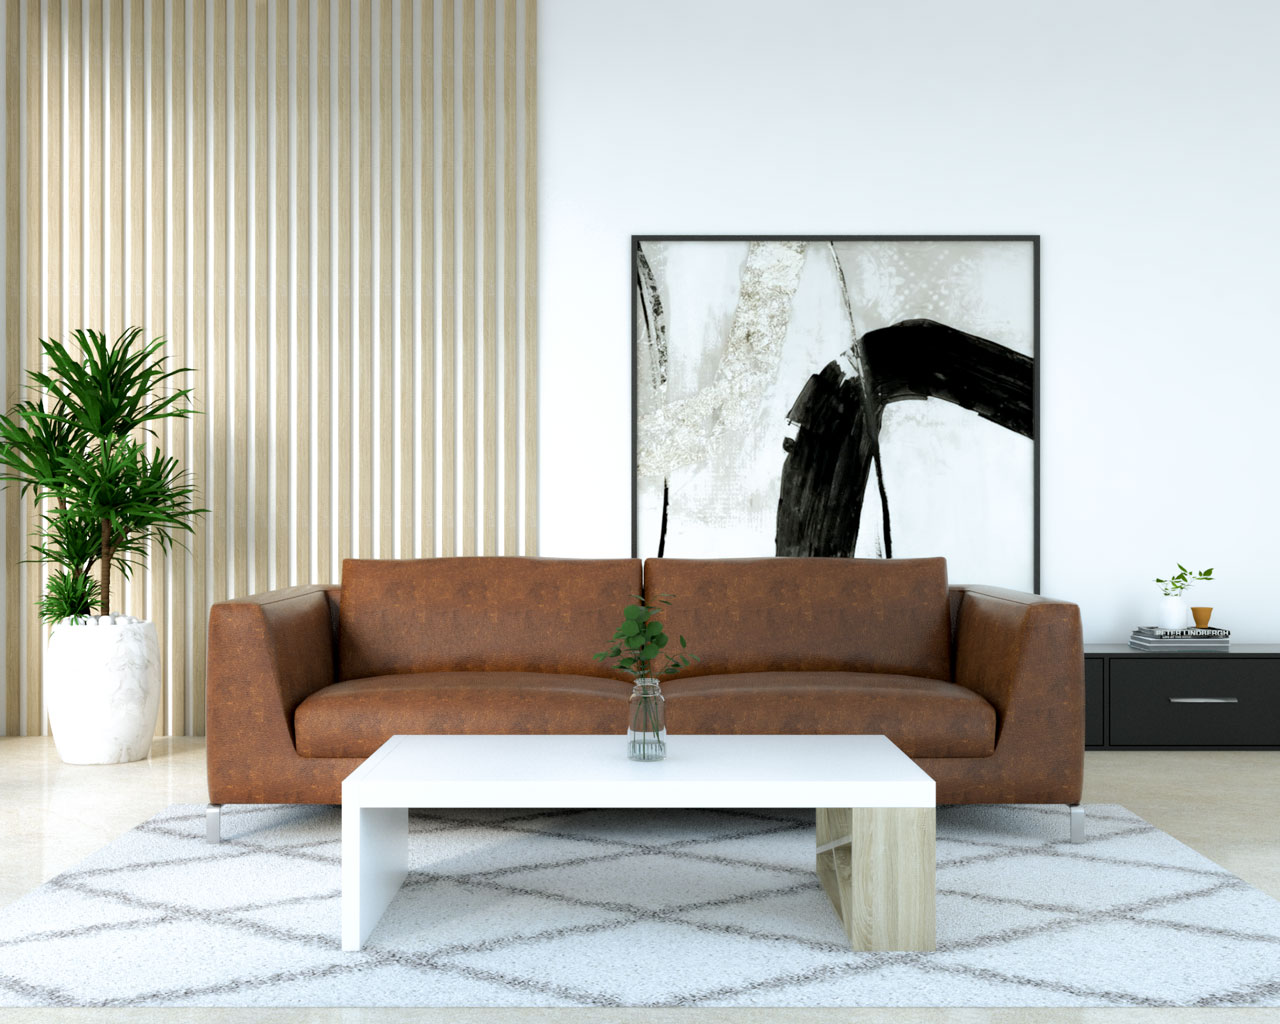 White and wood coffee table with classic brown leather couch